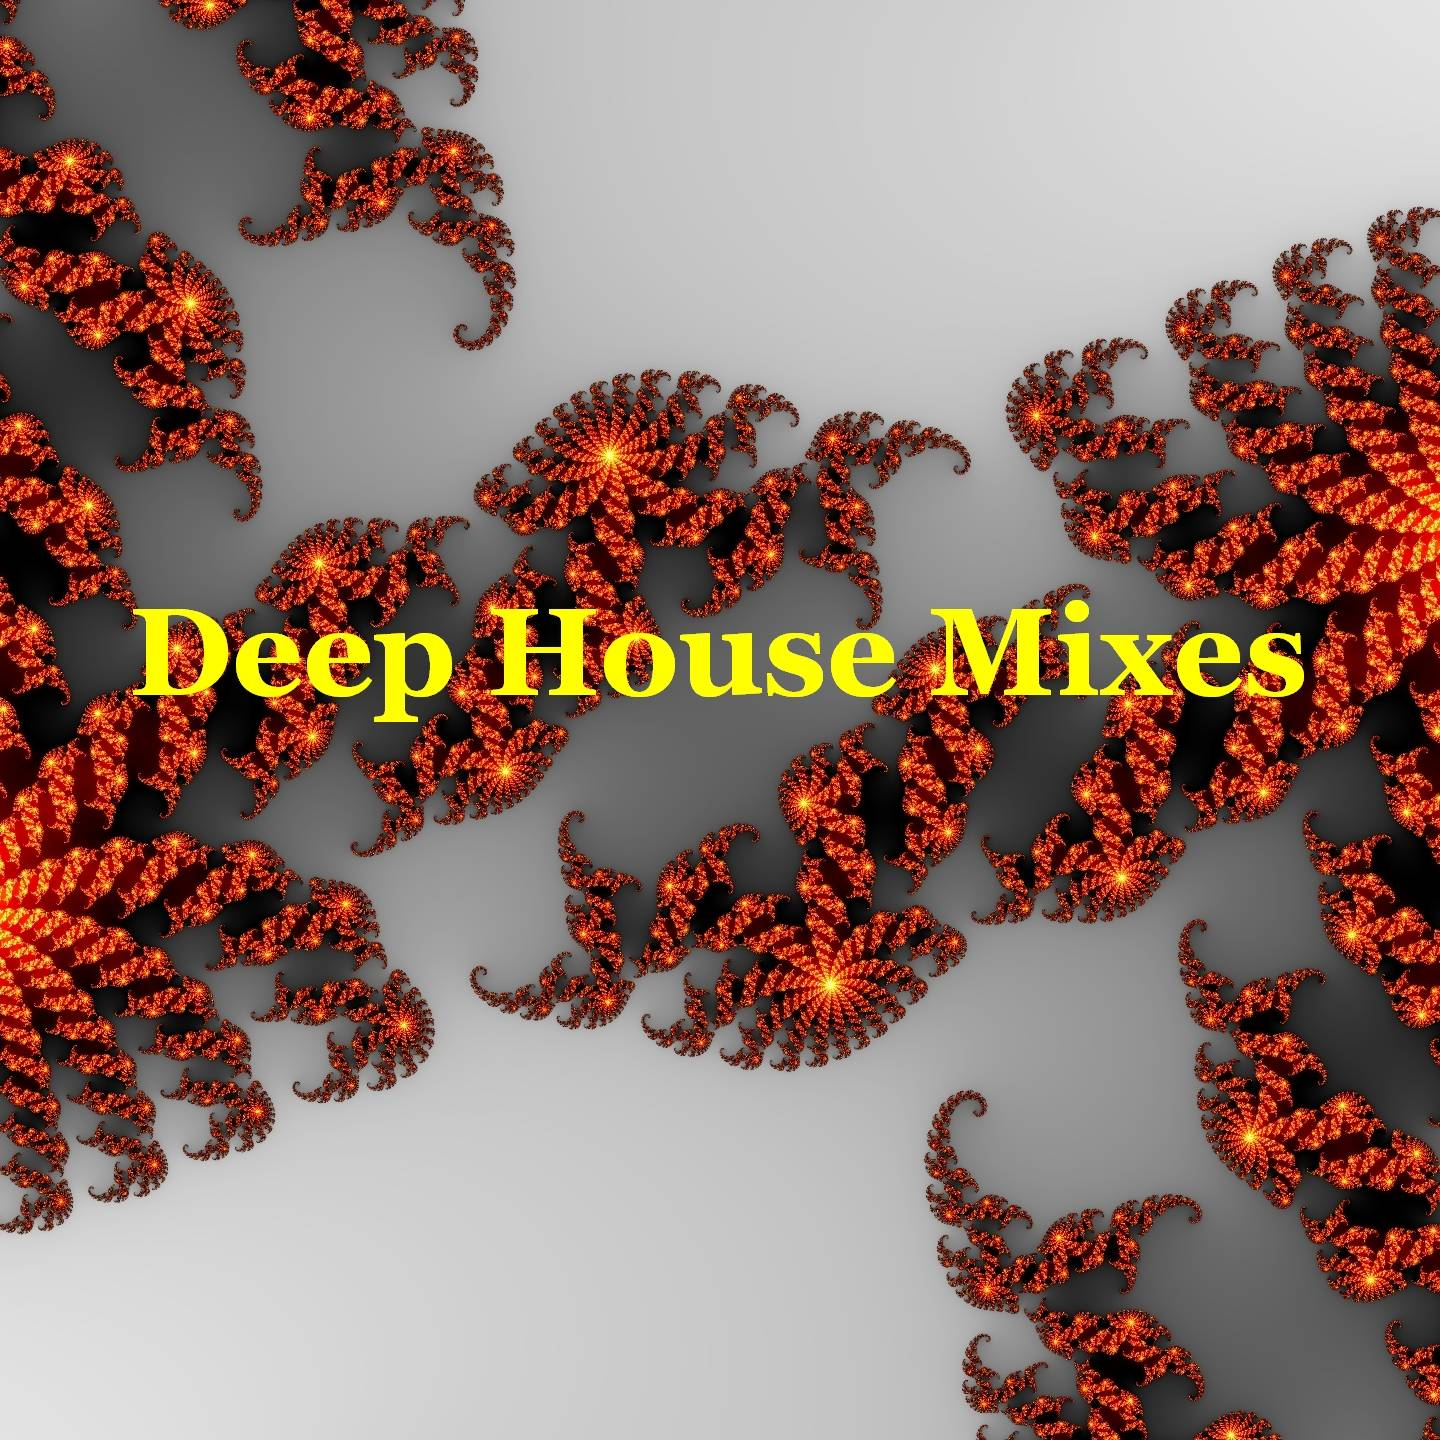 Deep House Mixes